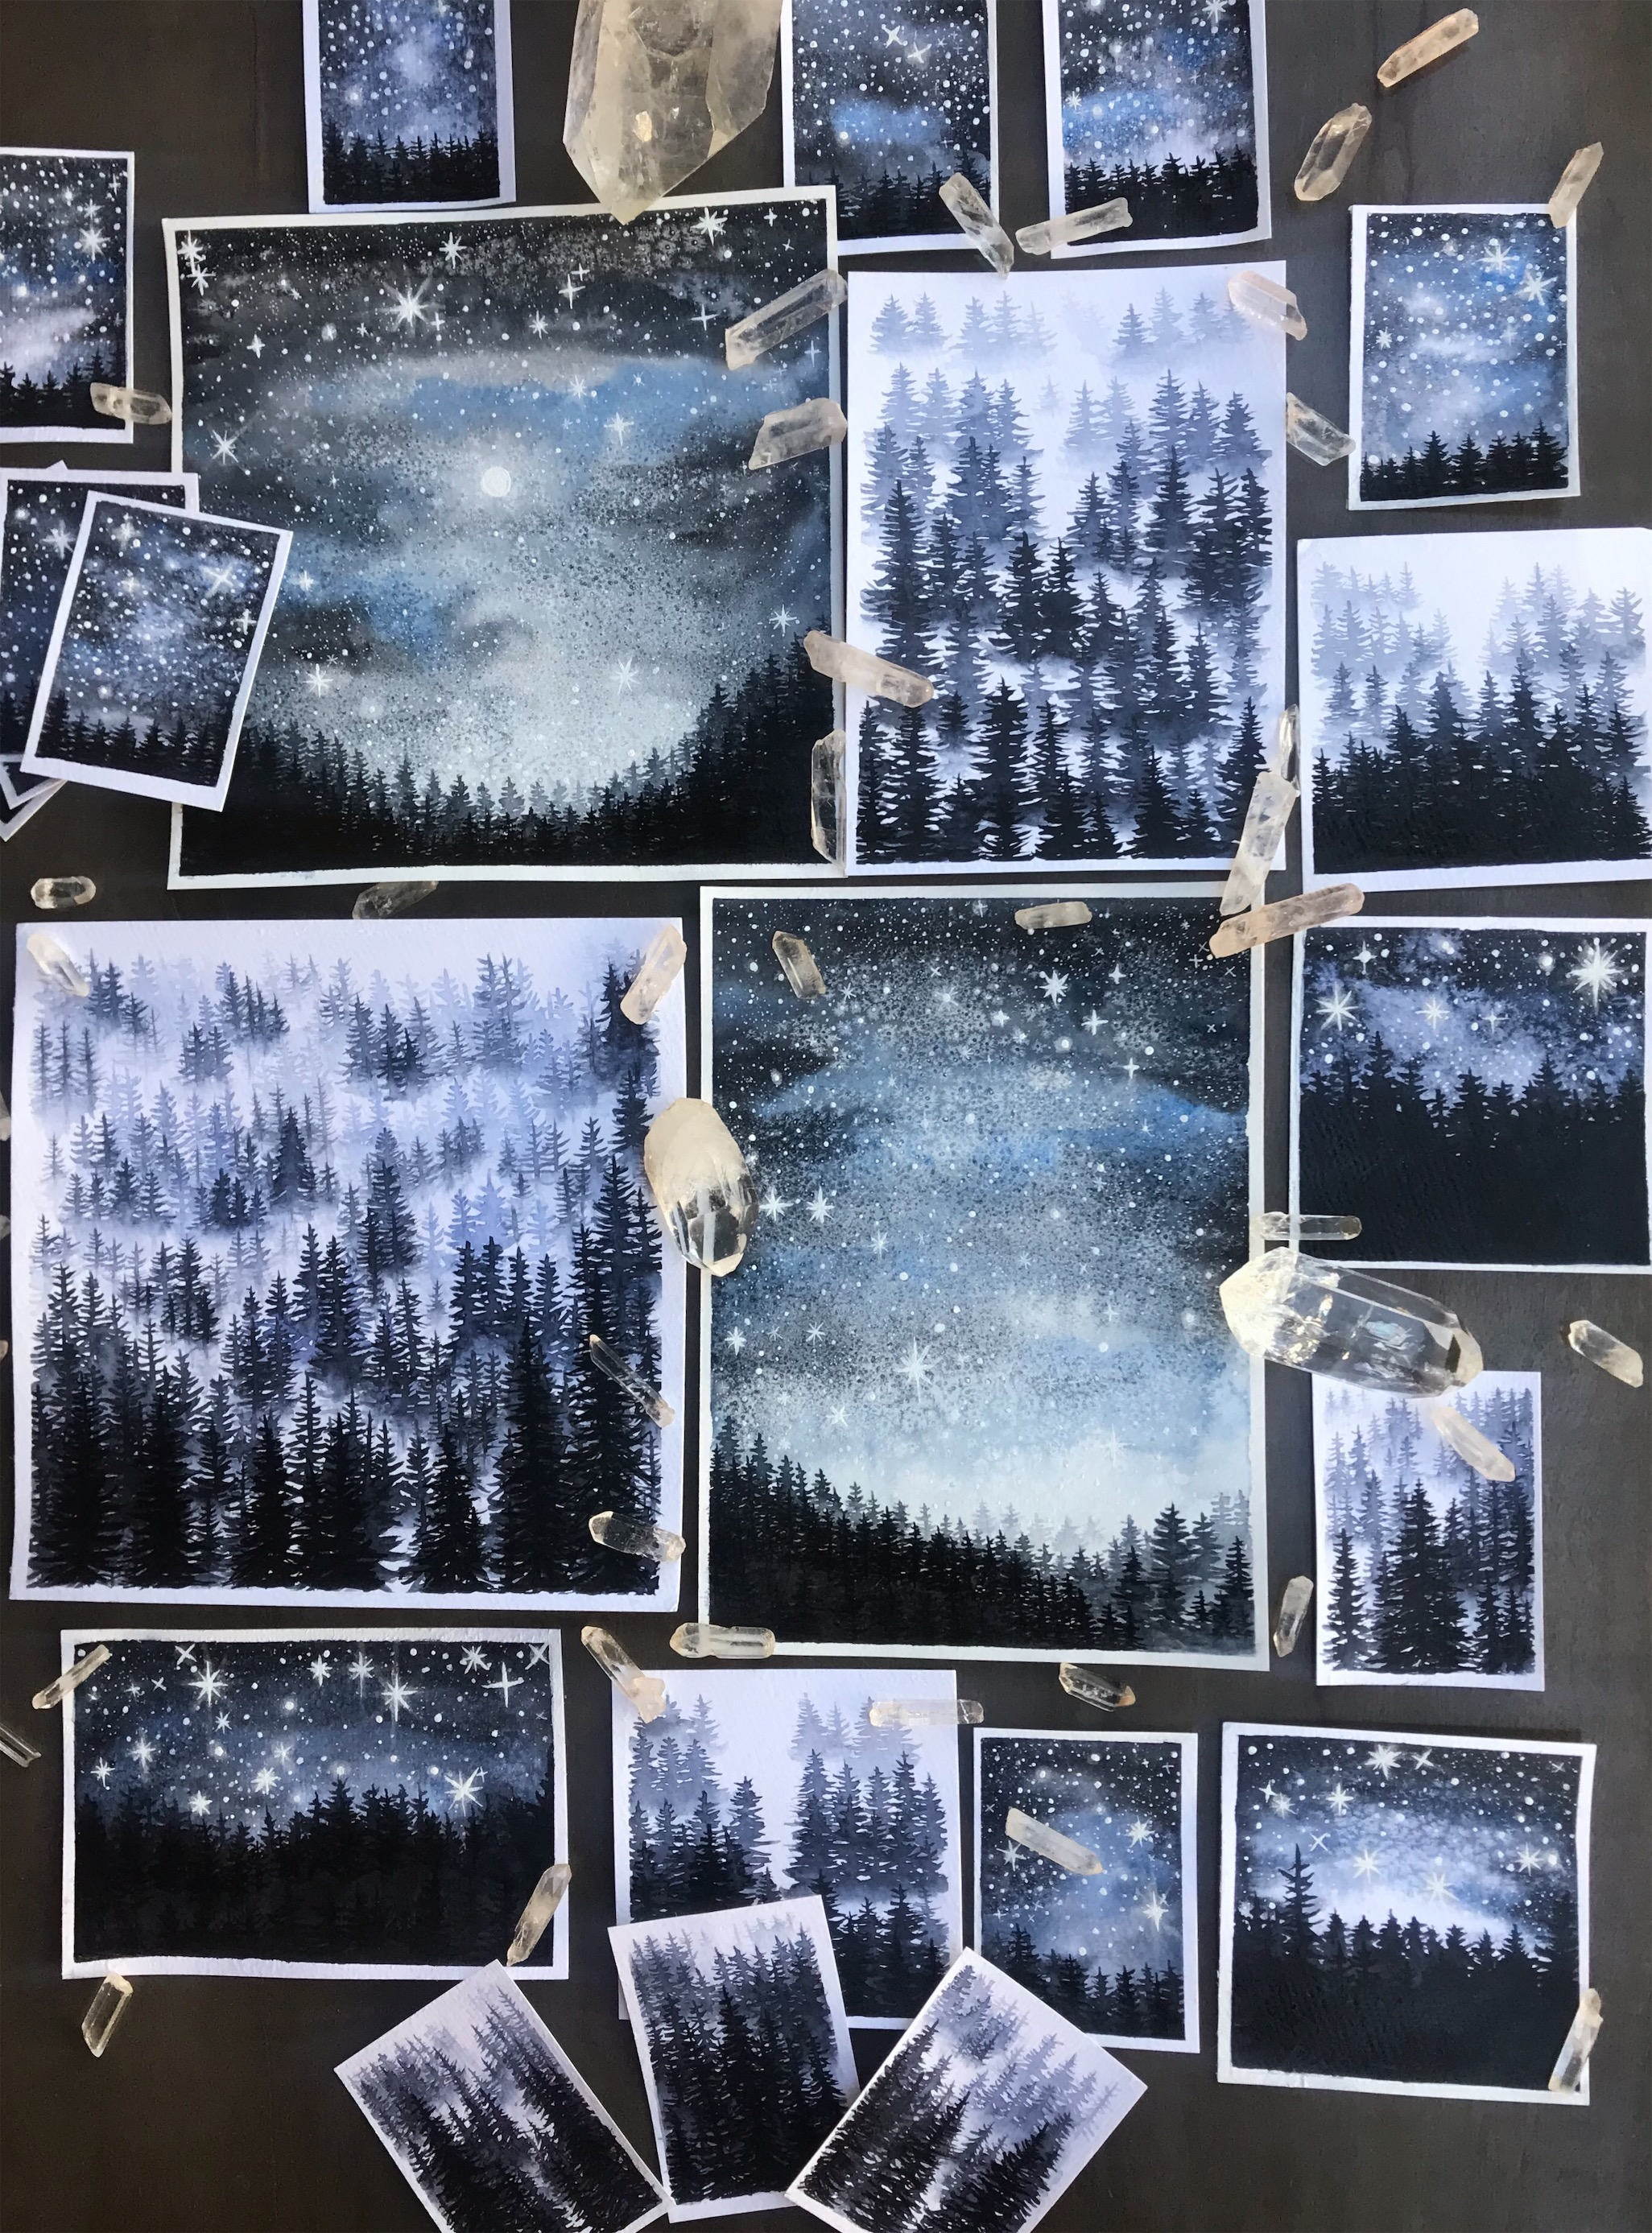 Glow in the dark misty forest scenes by rachael caringella | Tree talker art ATCS and originals